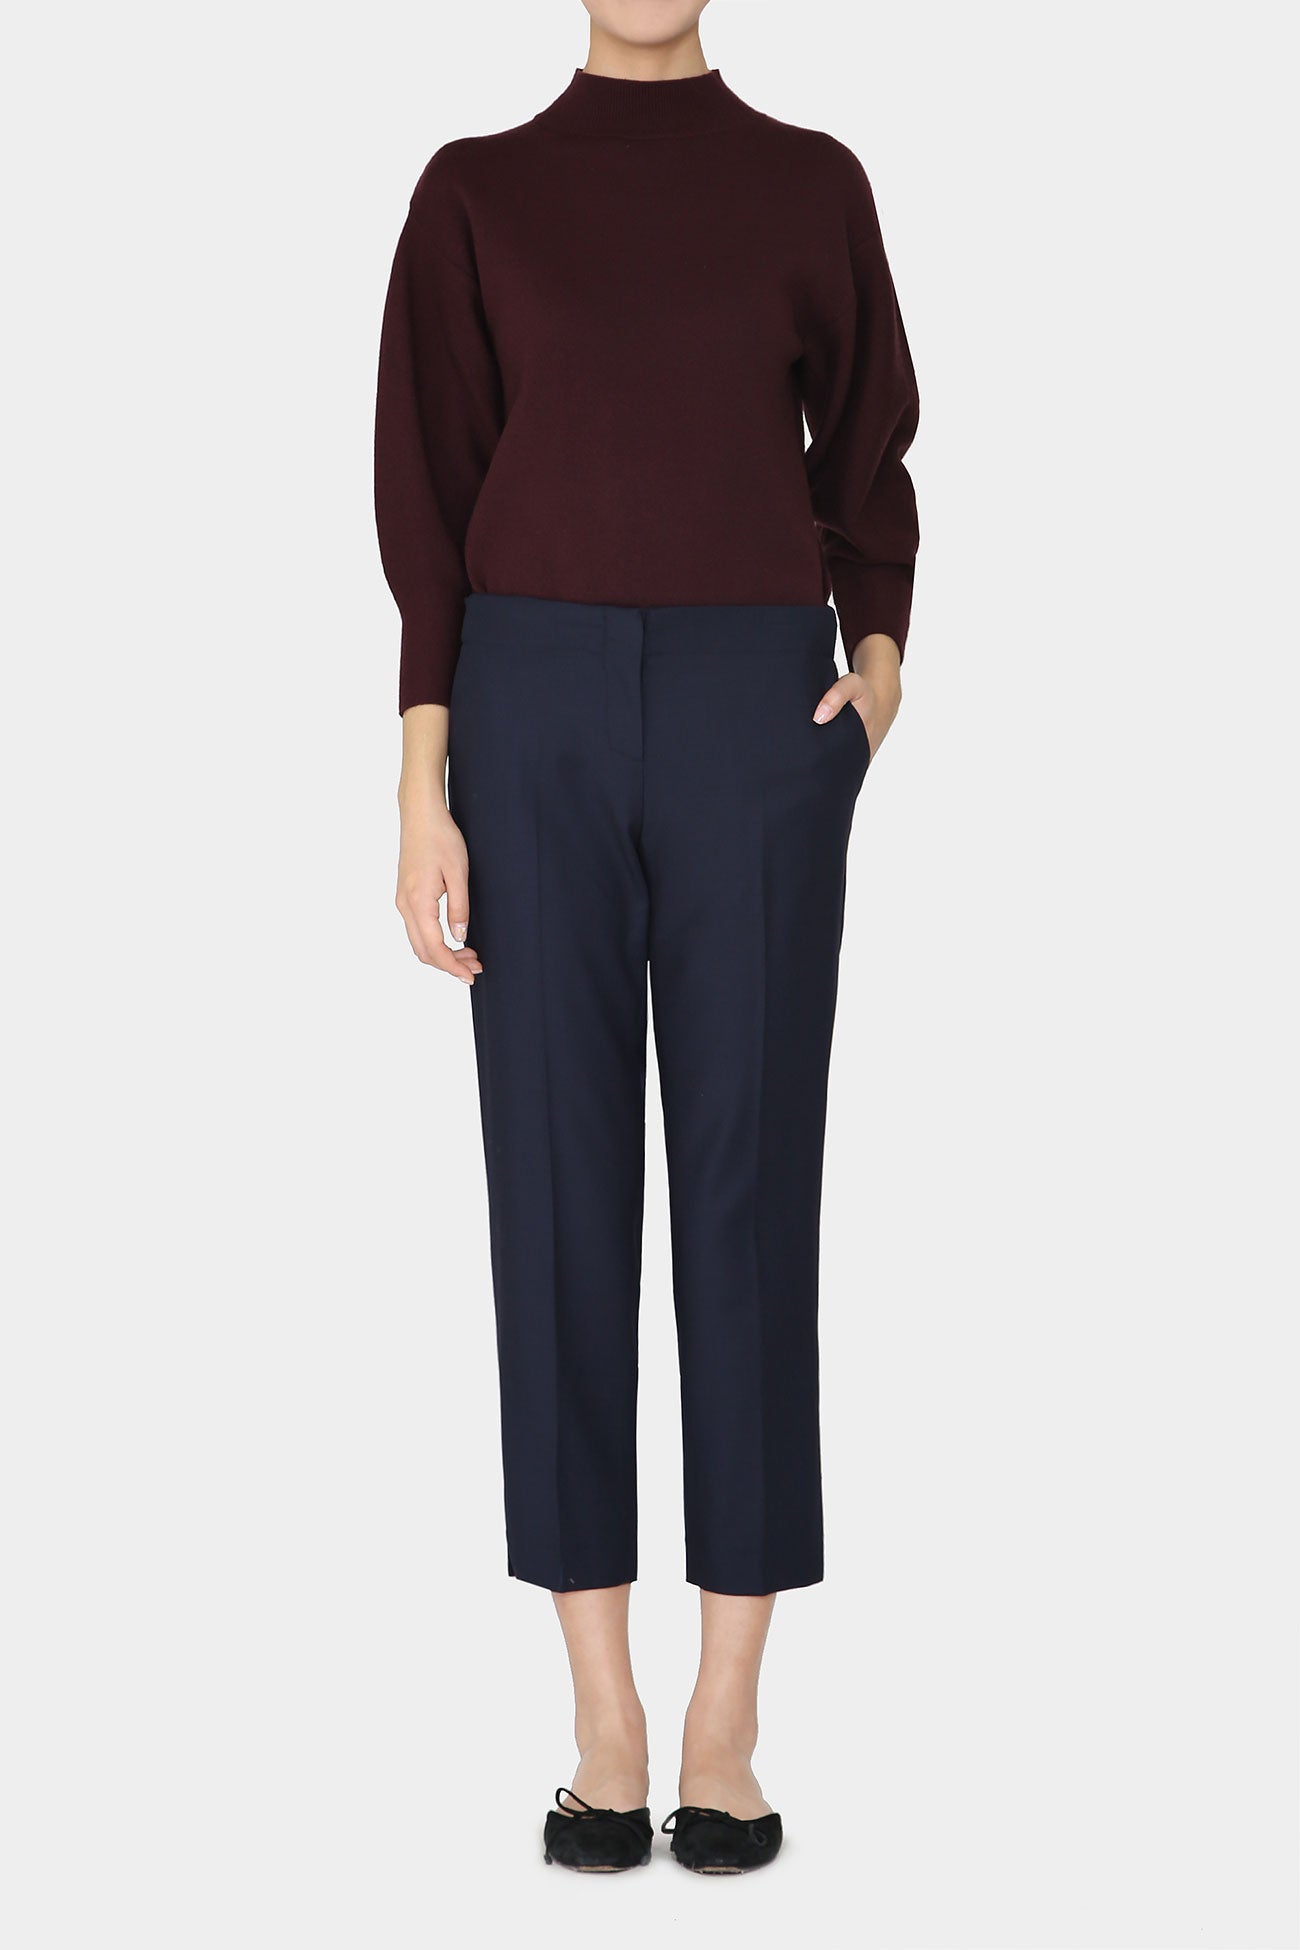 NAVY NATALIE WOOL COMFORT TROUSERS